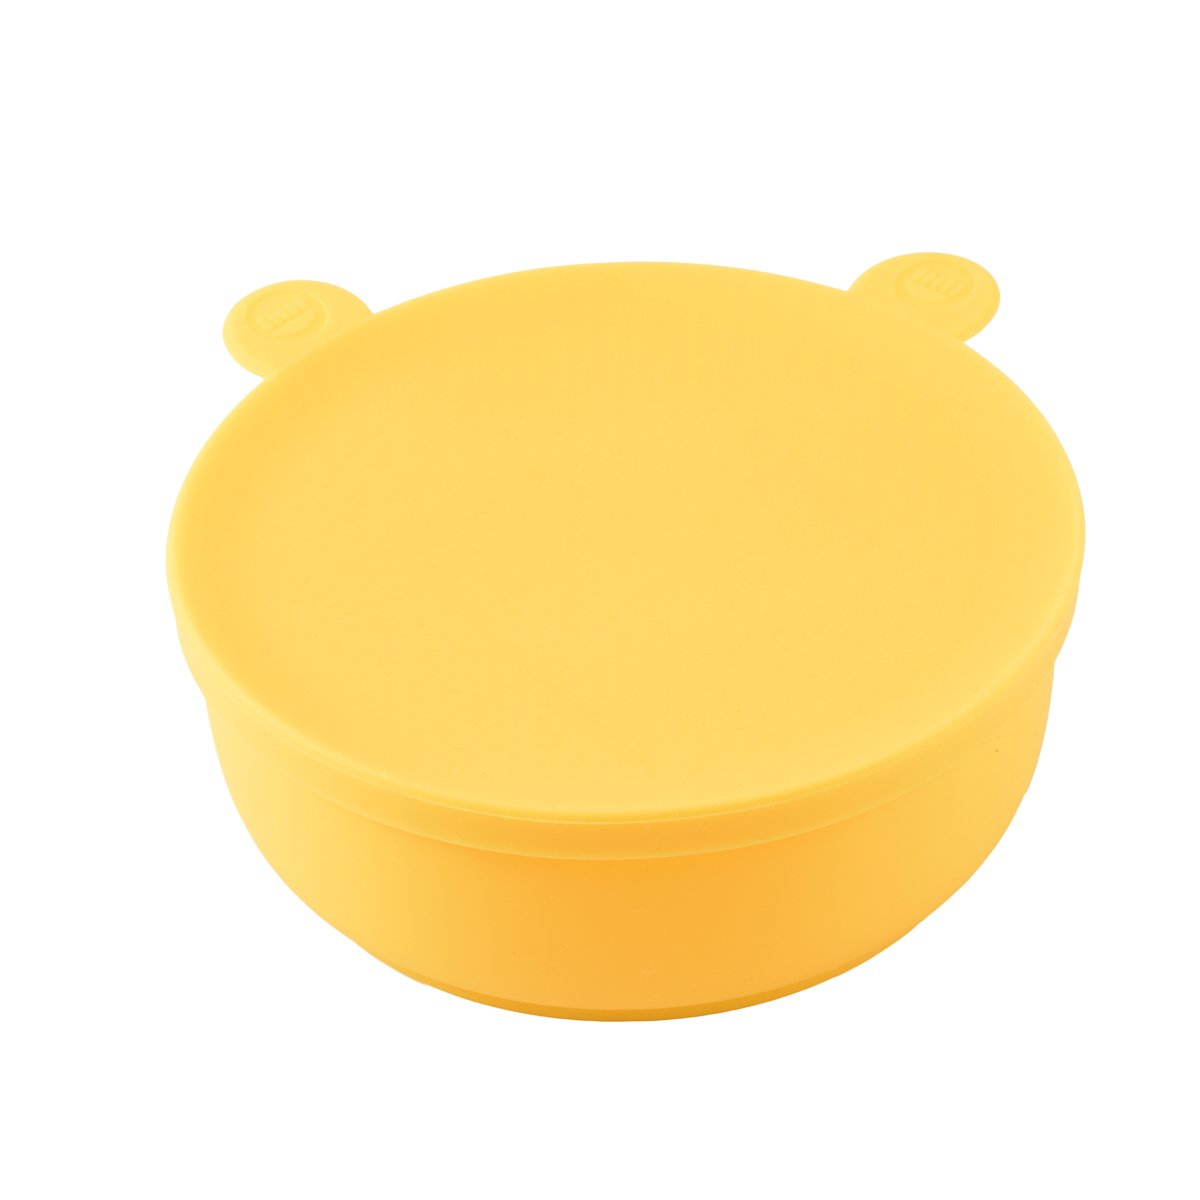 HOYATO Cute Silicone Baby Toddlers Food Feeding Meal Bowls/Mat with Lid Yellow Set of 1 for Kids Children Kitchen Dining Table BPA Free Dishwasher Safe by HOYATO